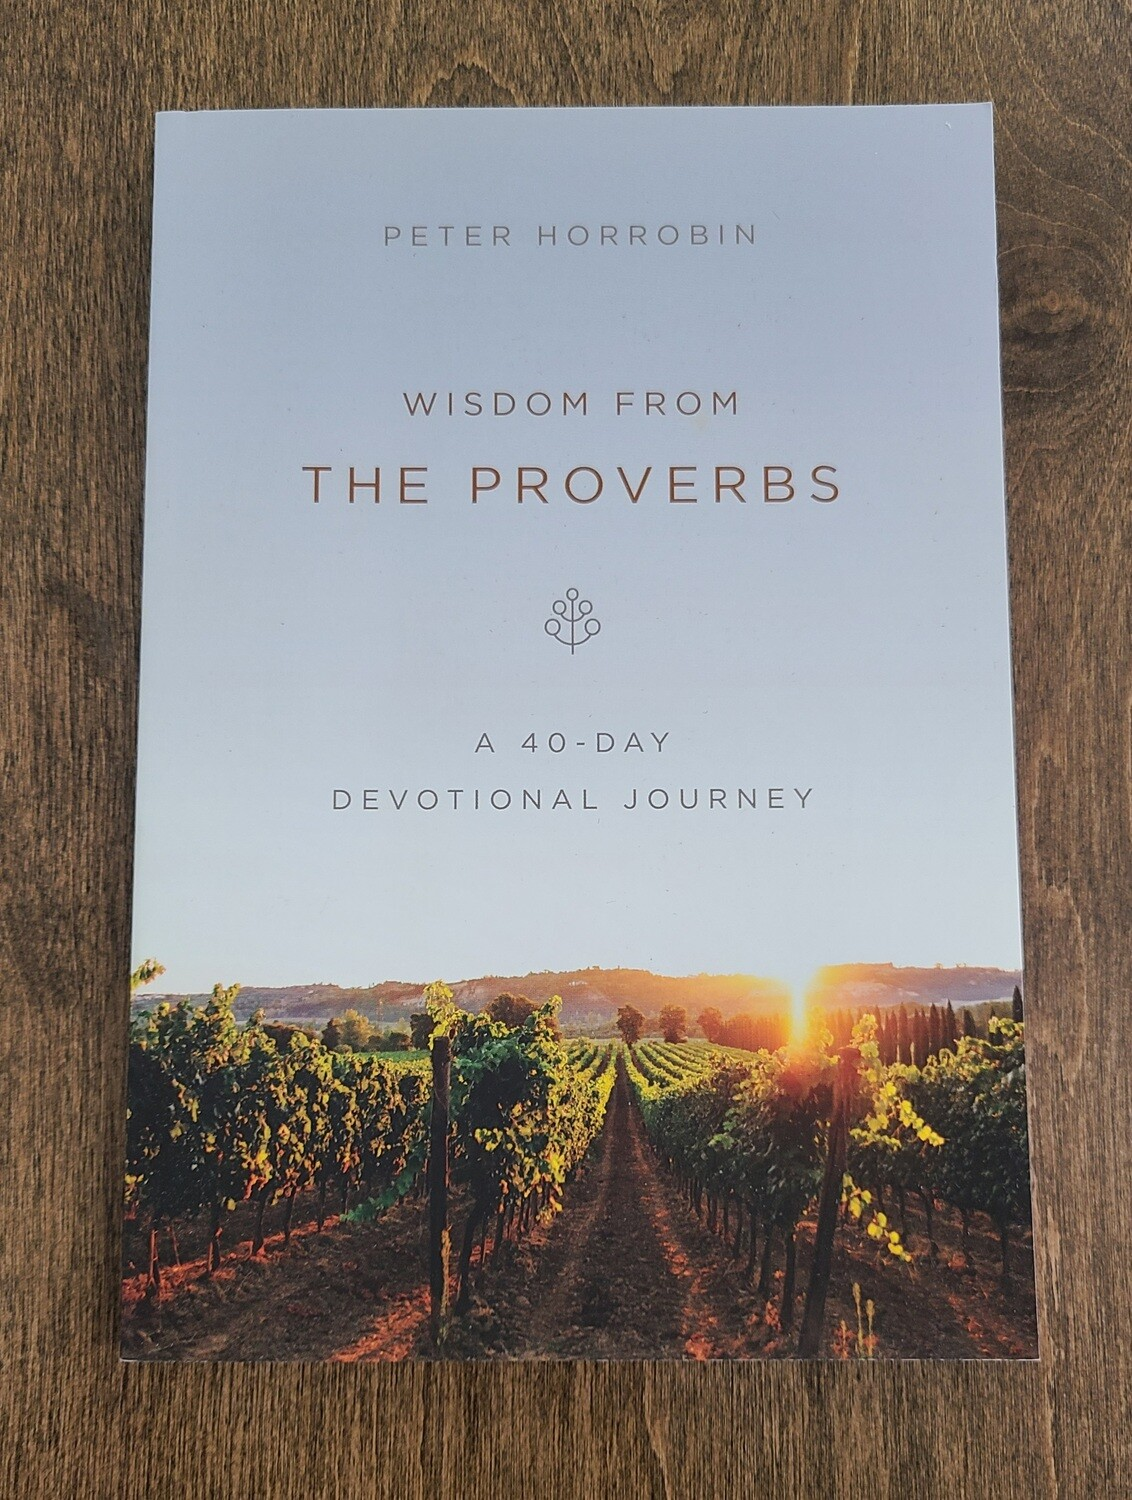 Wisdom from the Proverbs by Peter Horrobin